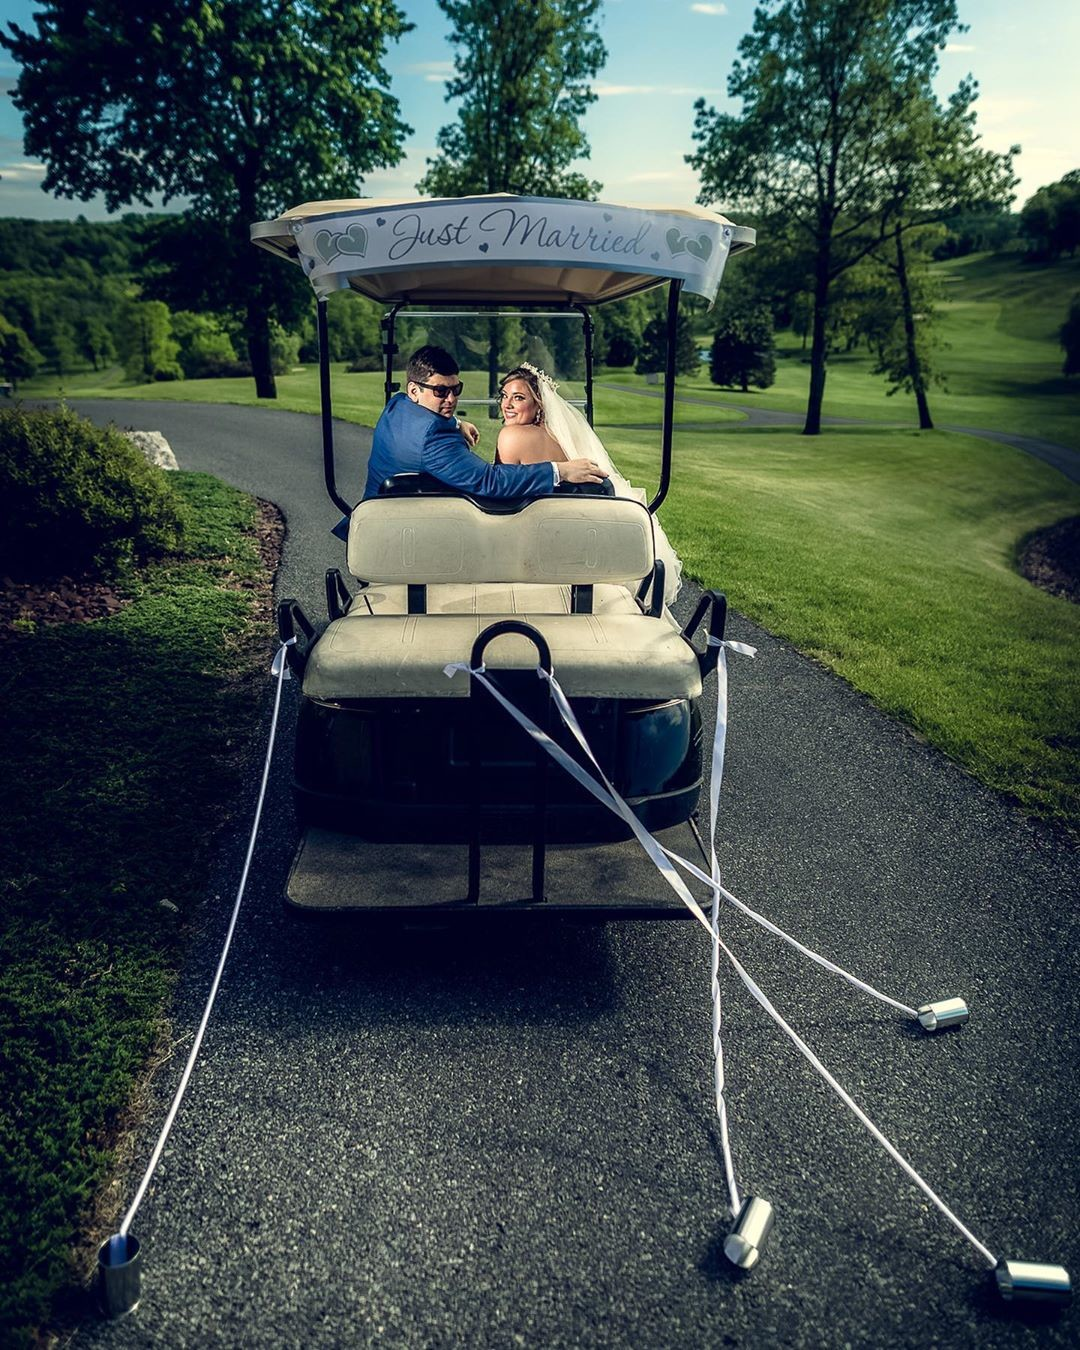 Congrats to Amy & Brenton on such a beautiful fun and exciting wedding at Woodstone Country Club!!